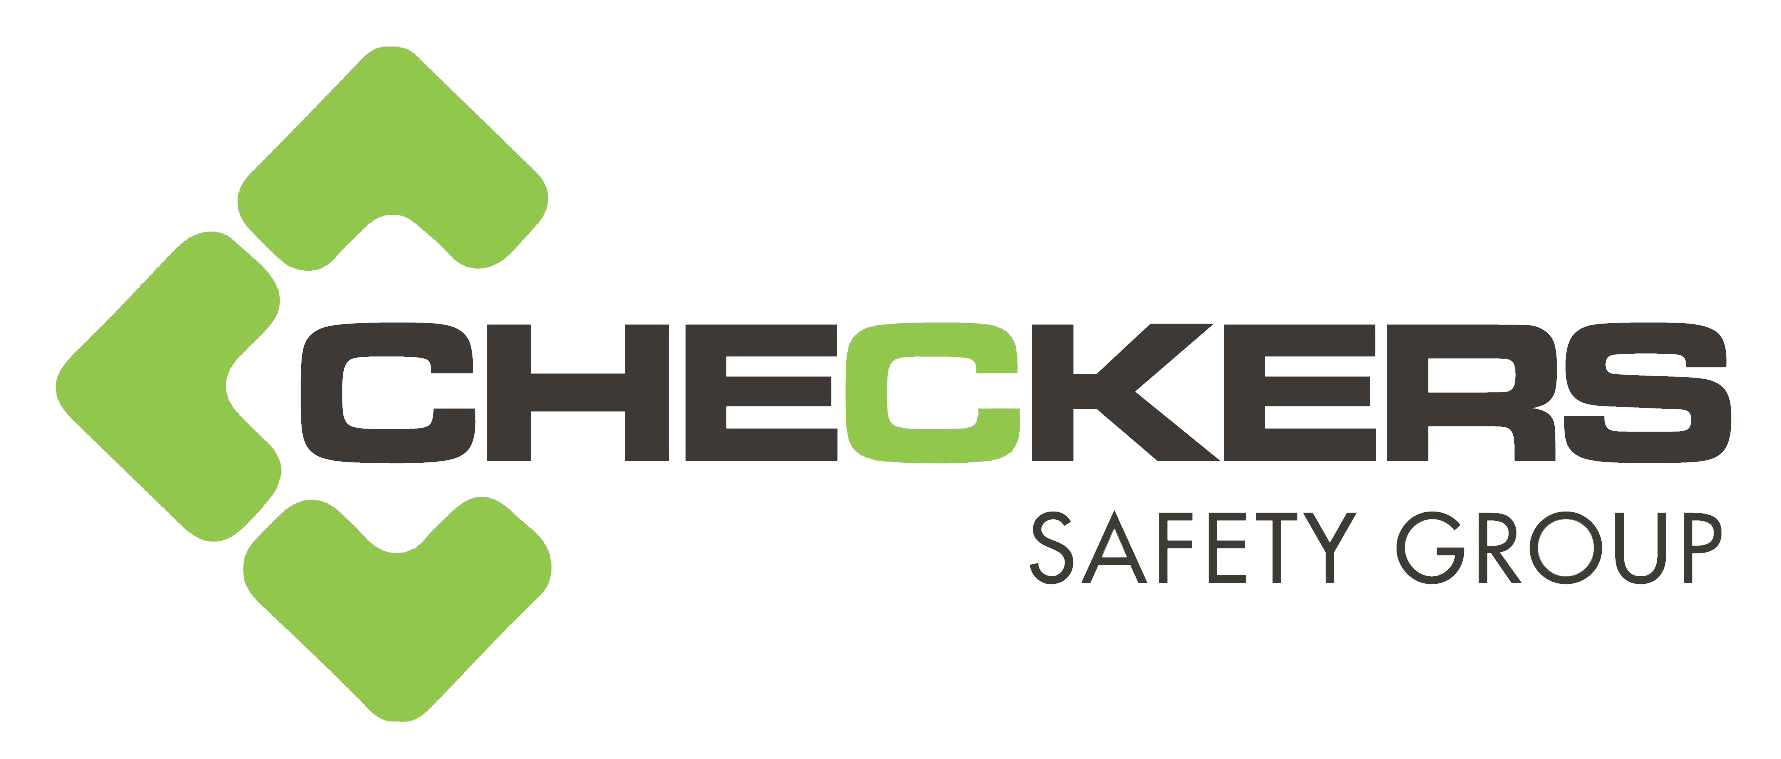 Checkers_Safety_Group